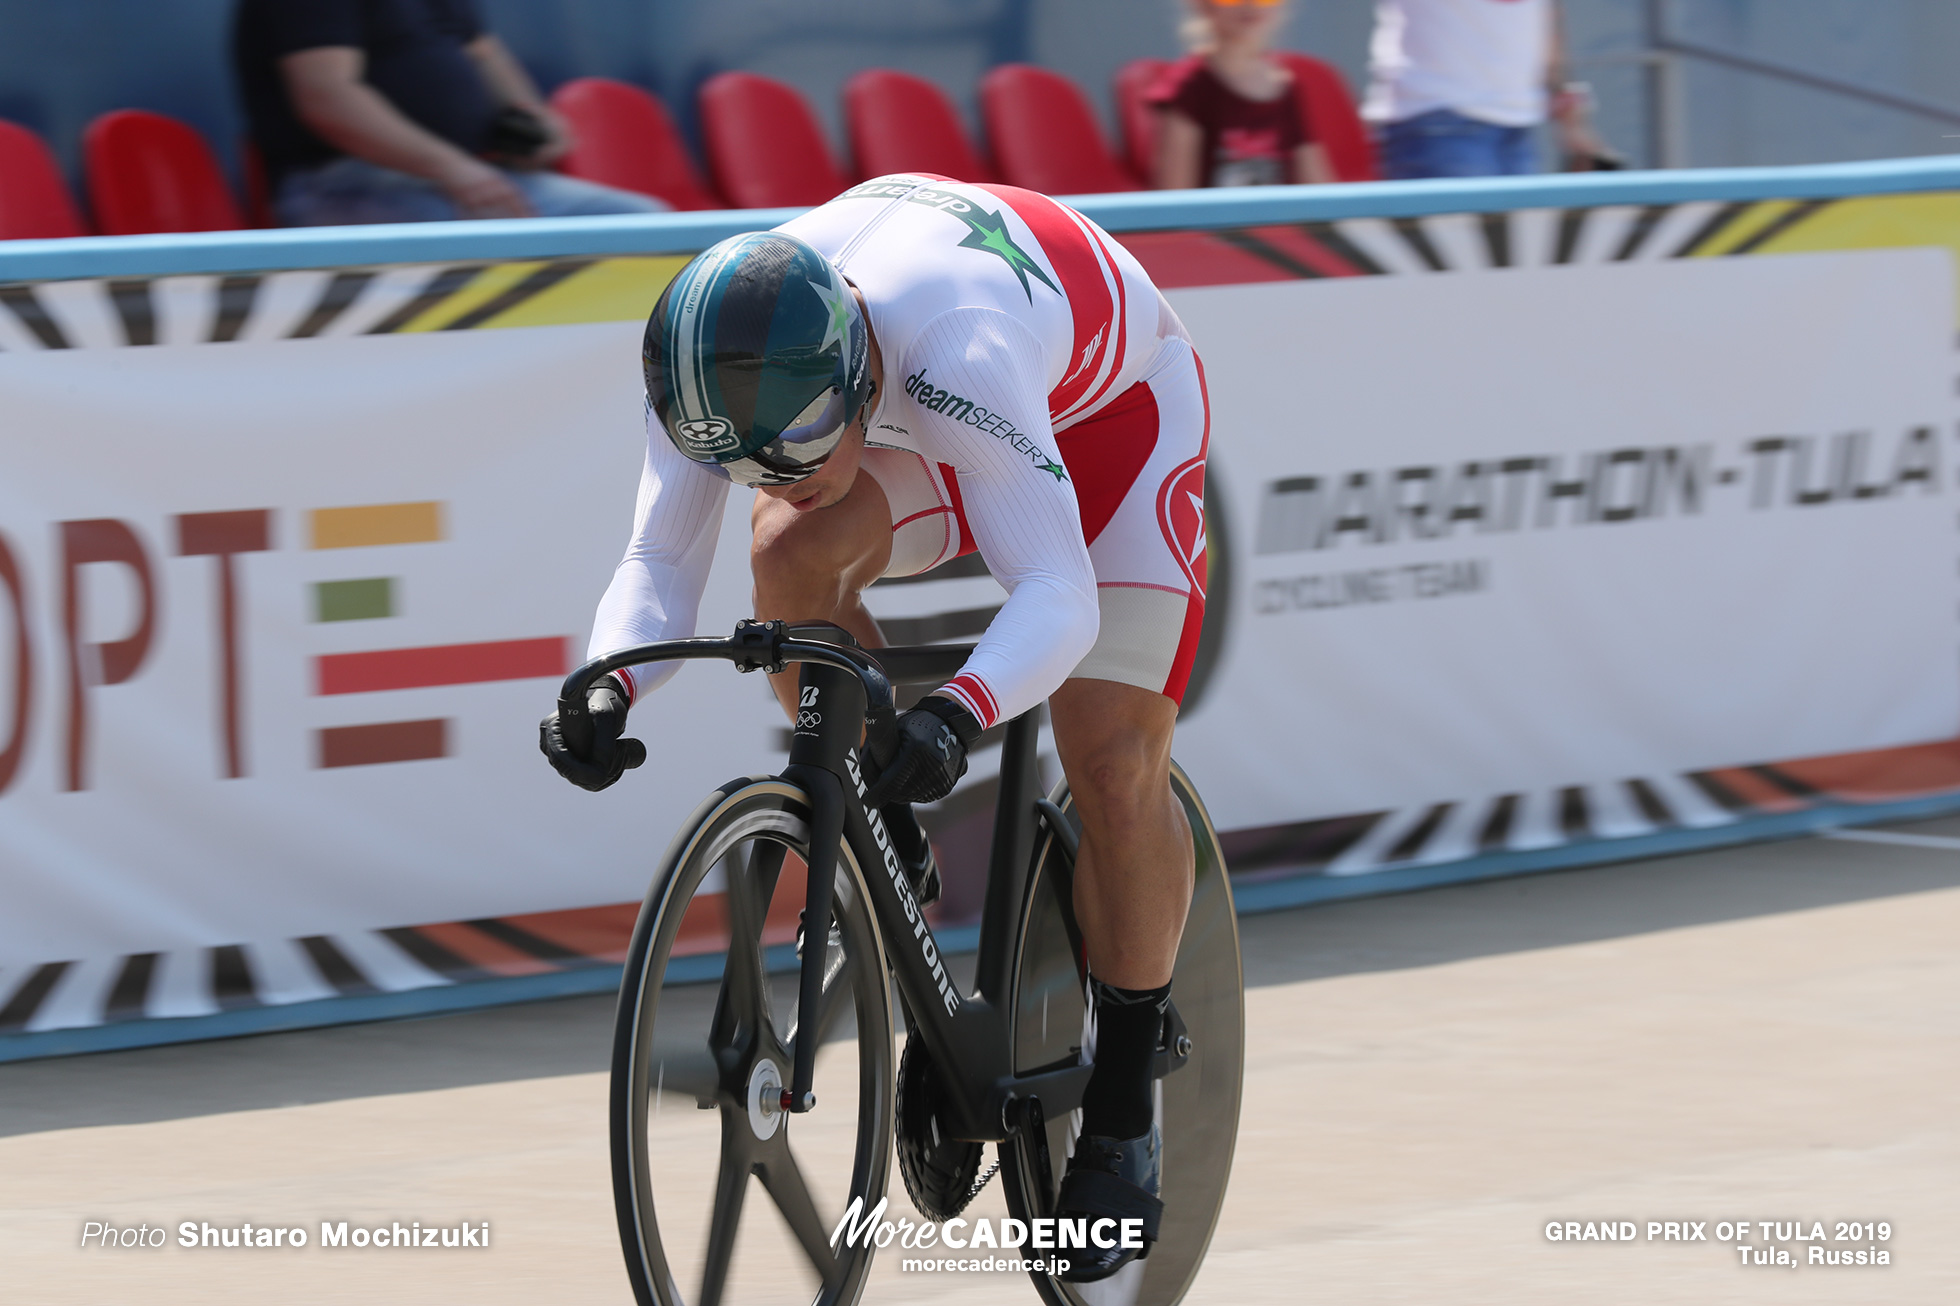 Men's Sprint Qualifying / GRAND PRIX OF TULA 2019